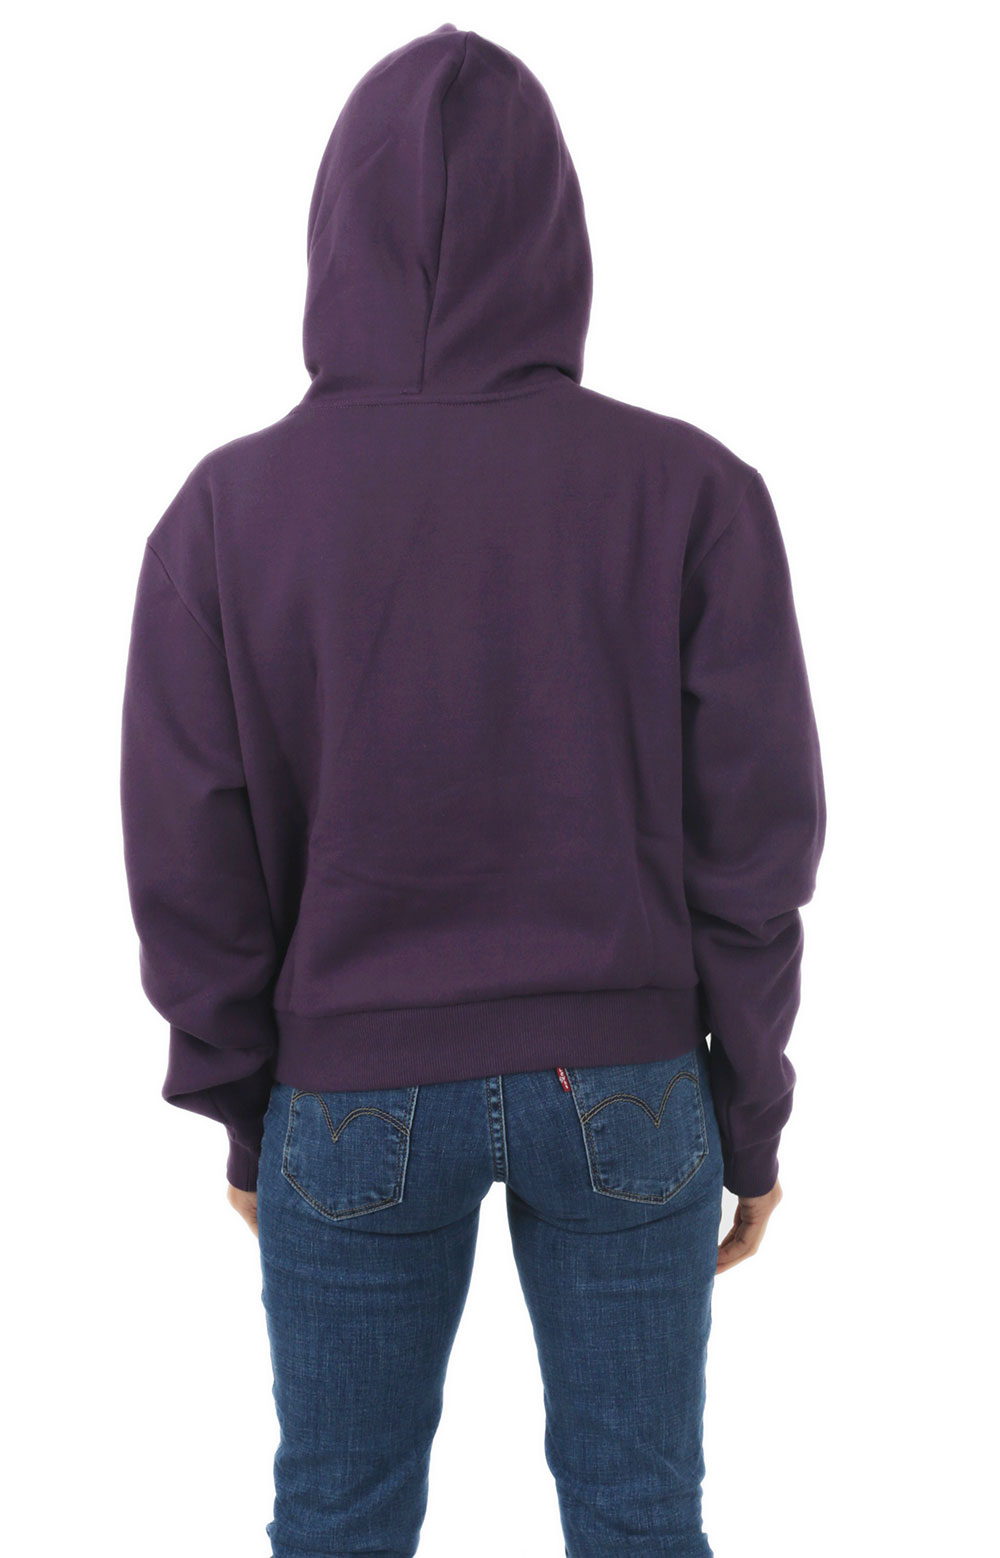 Full Patch Crop Pullover Hoodie - Mysterioso 3